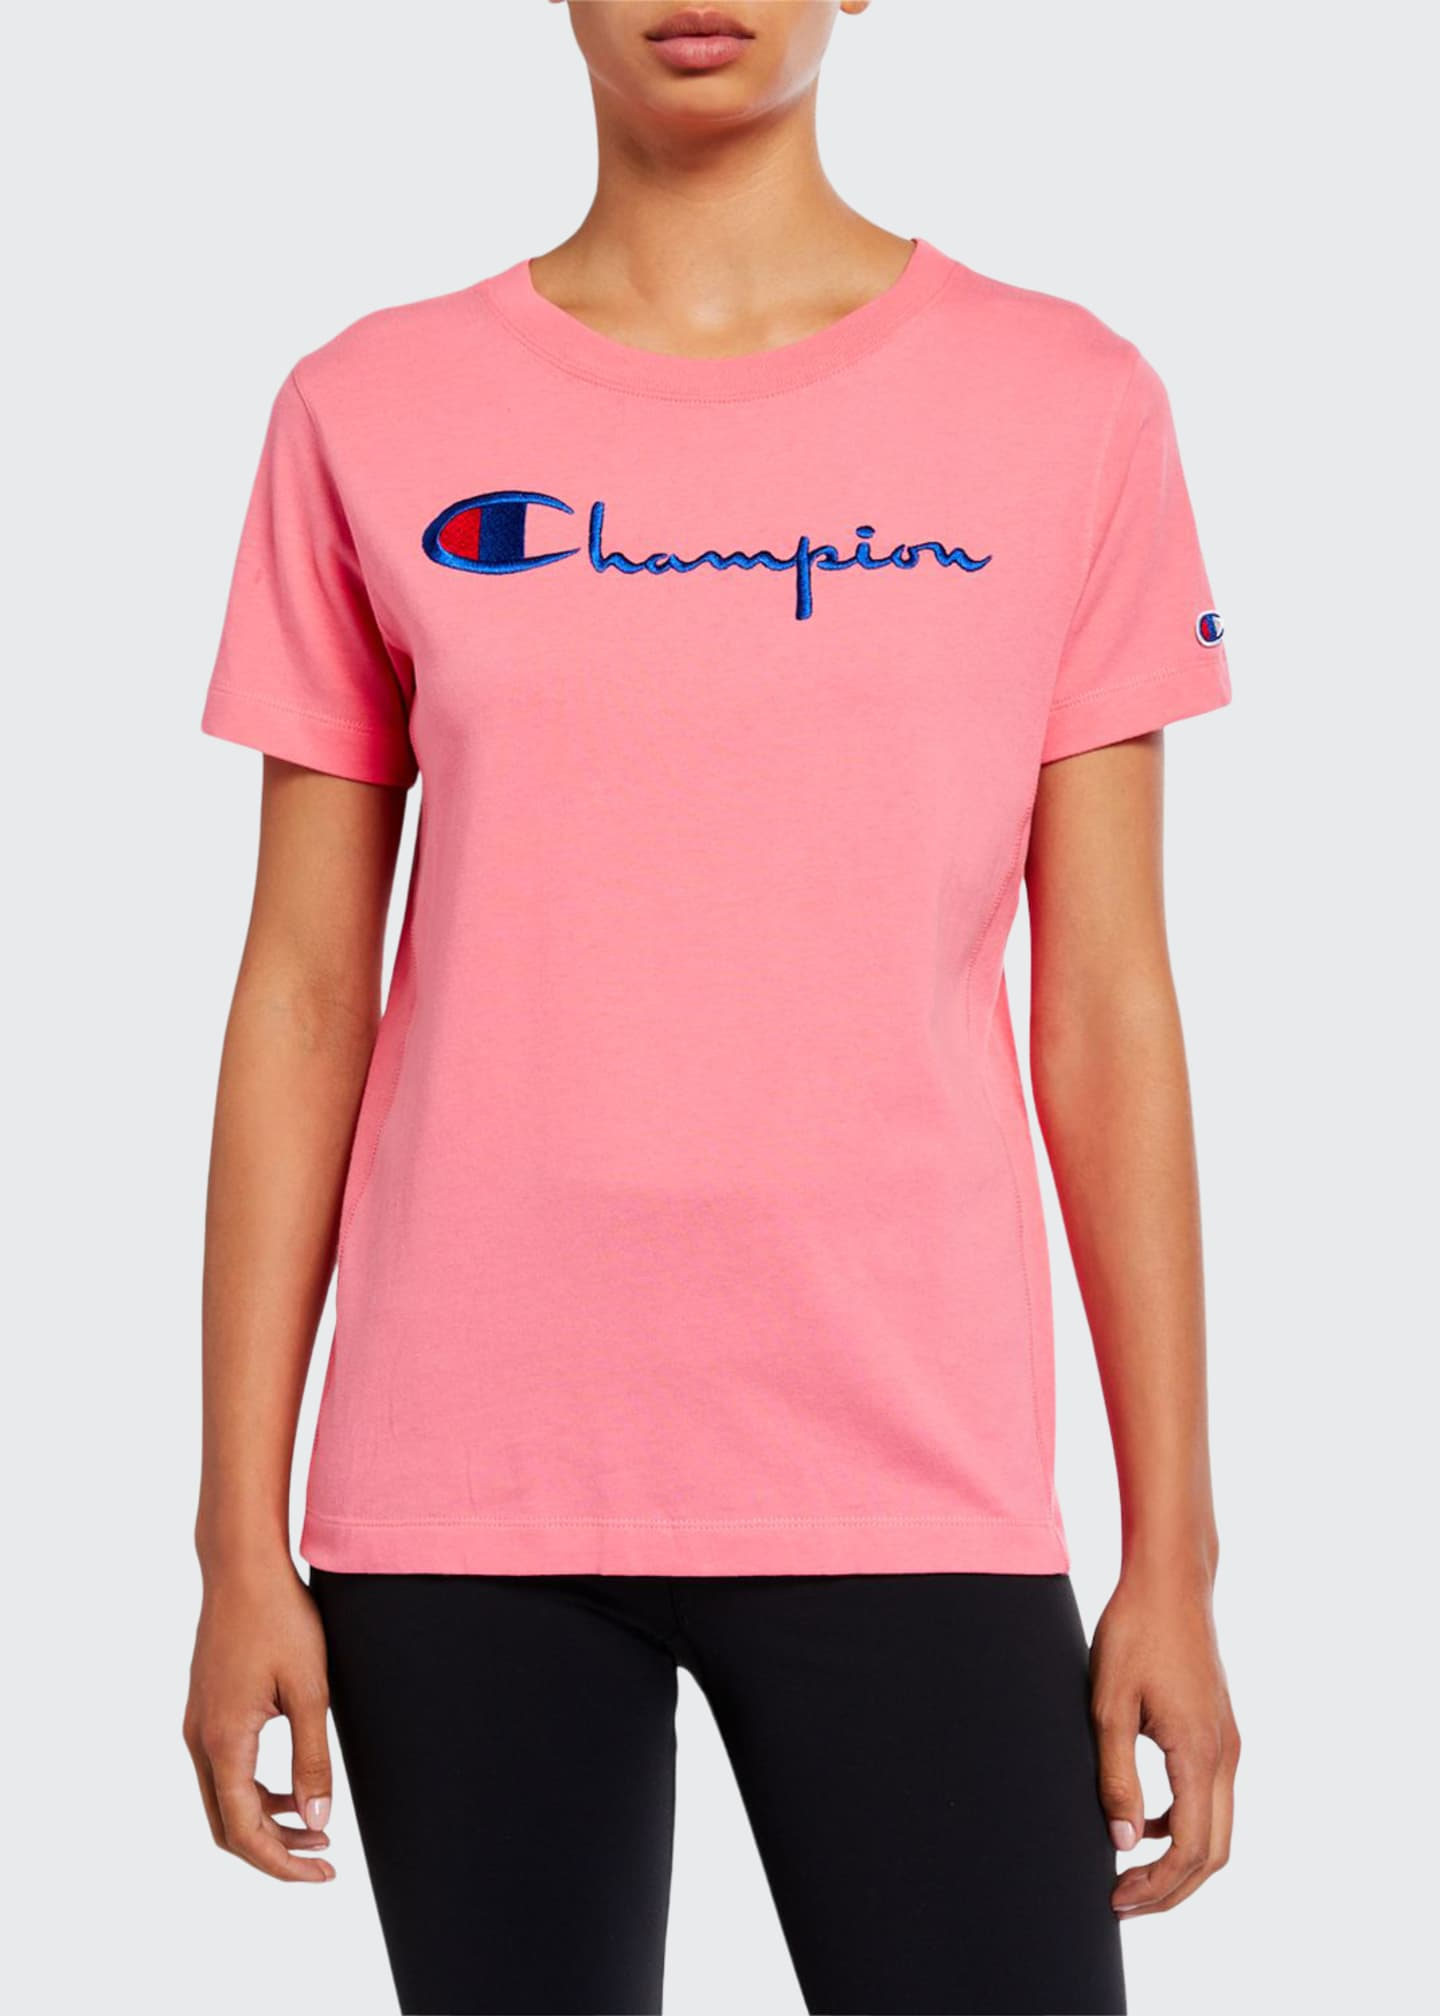 Champion Europe Reverse Weave Big Script Crewneck Short-Sleeve